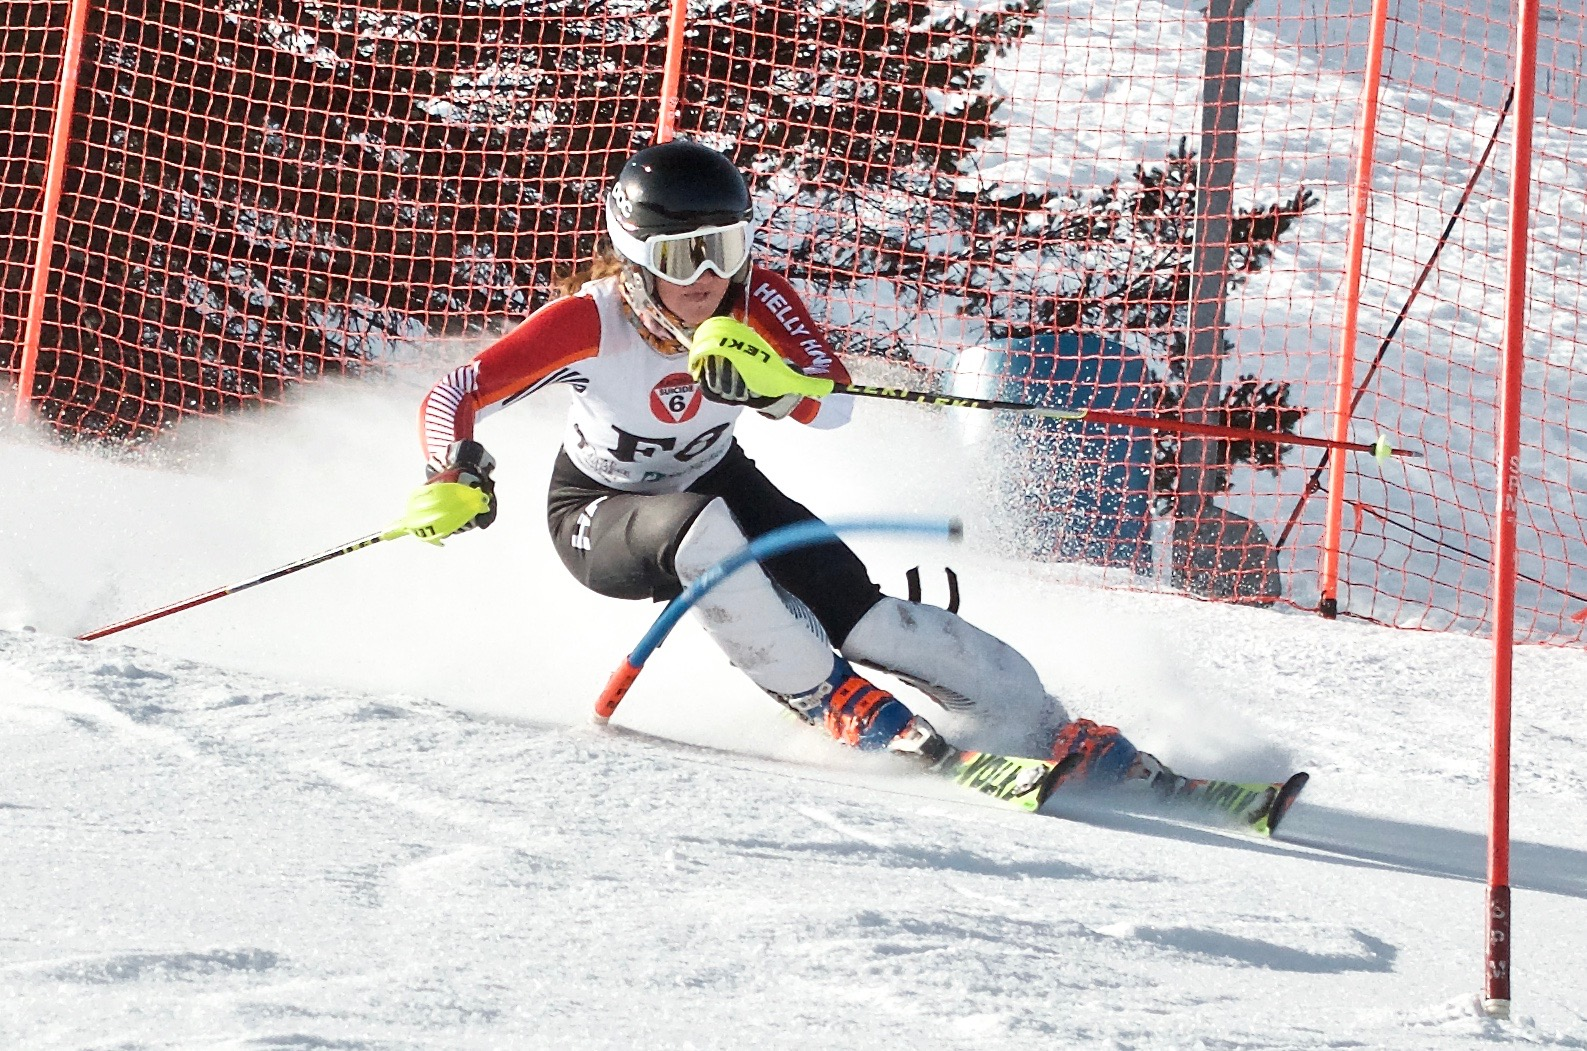 Kelly Gebhardt solidified her sixth place overall VT Cup standing with two strong SL performances at Bromley and one on her home hill at Suicide 6.